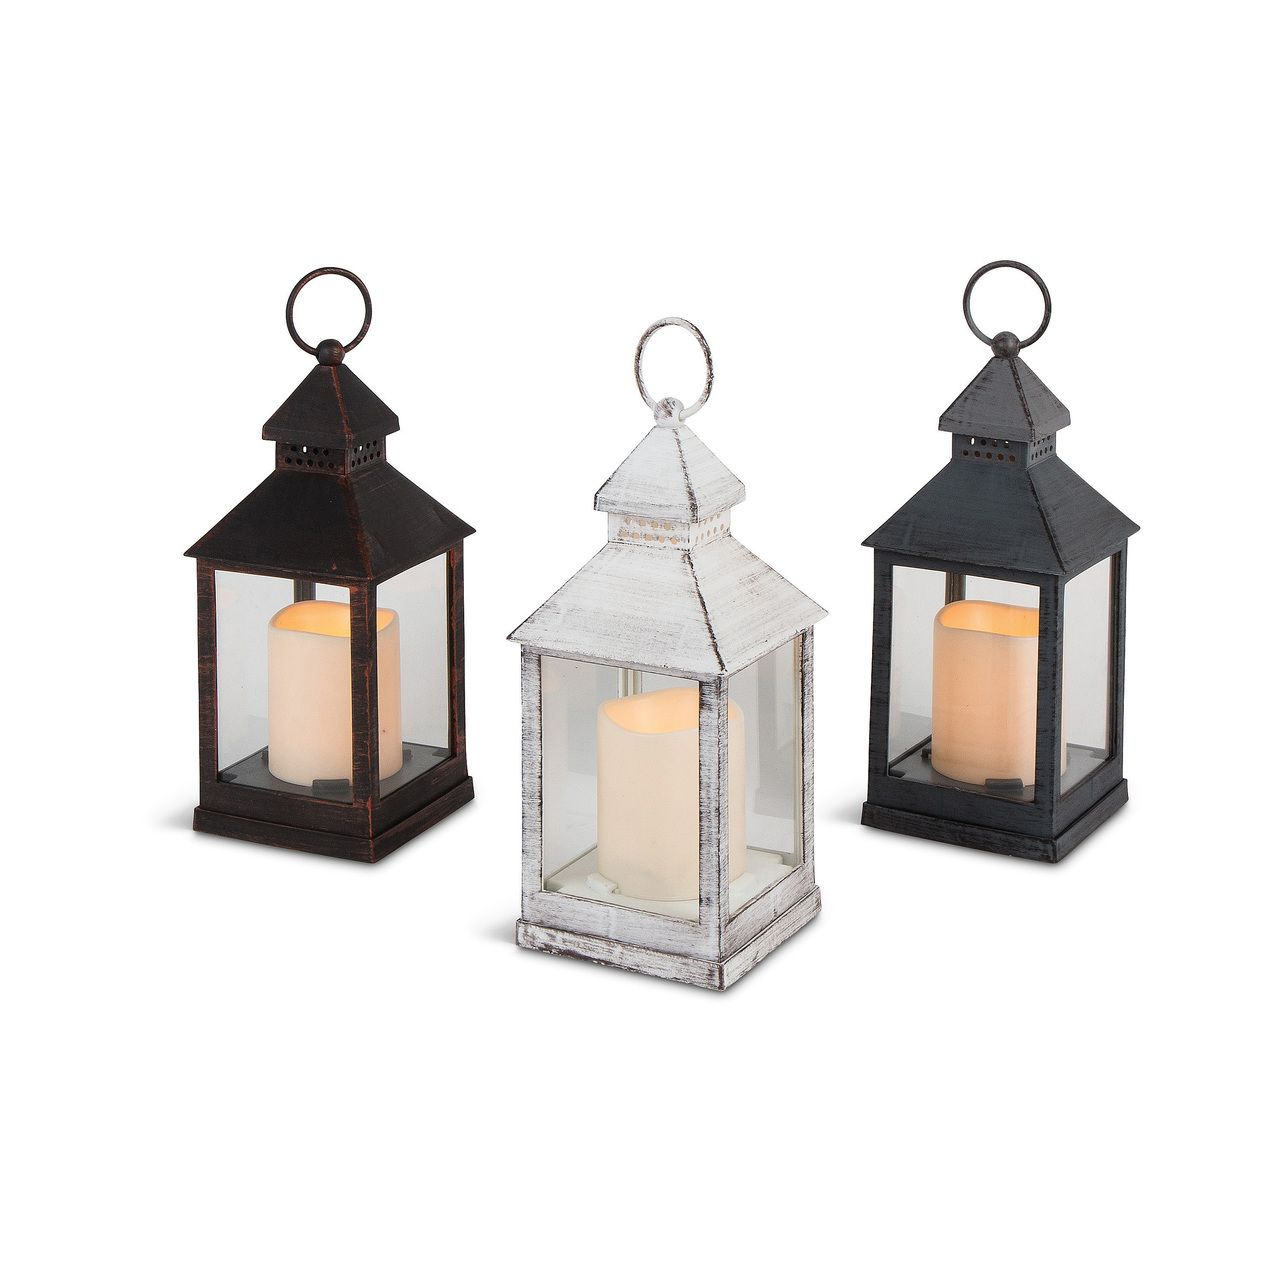 Plastic Lantern With Led Candle And Glass Panes And Timer 12 Lanterns Outdoor Lanterns Wedding Decor Style Lanterns